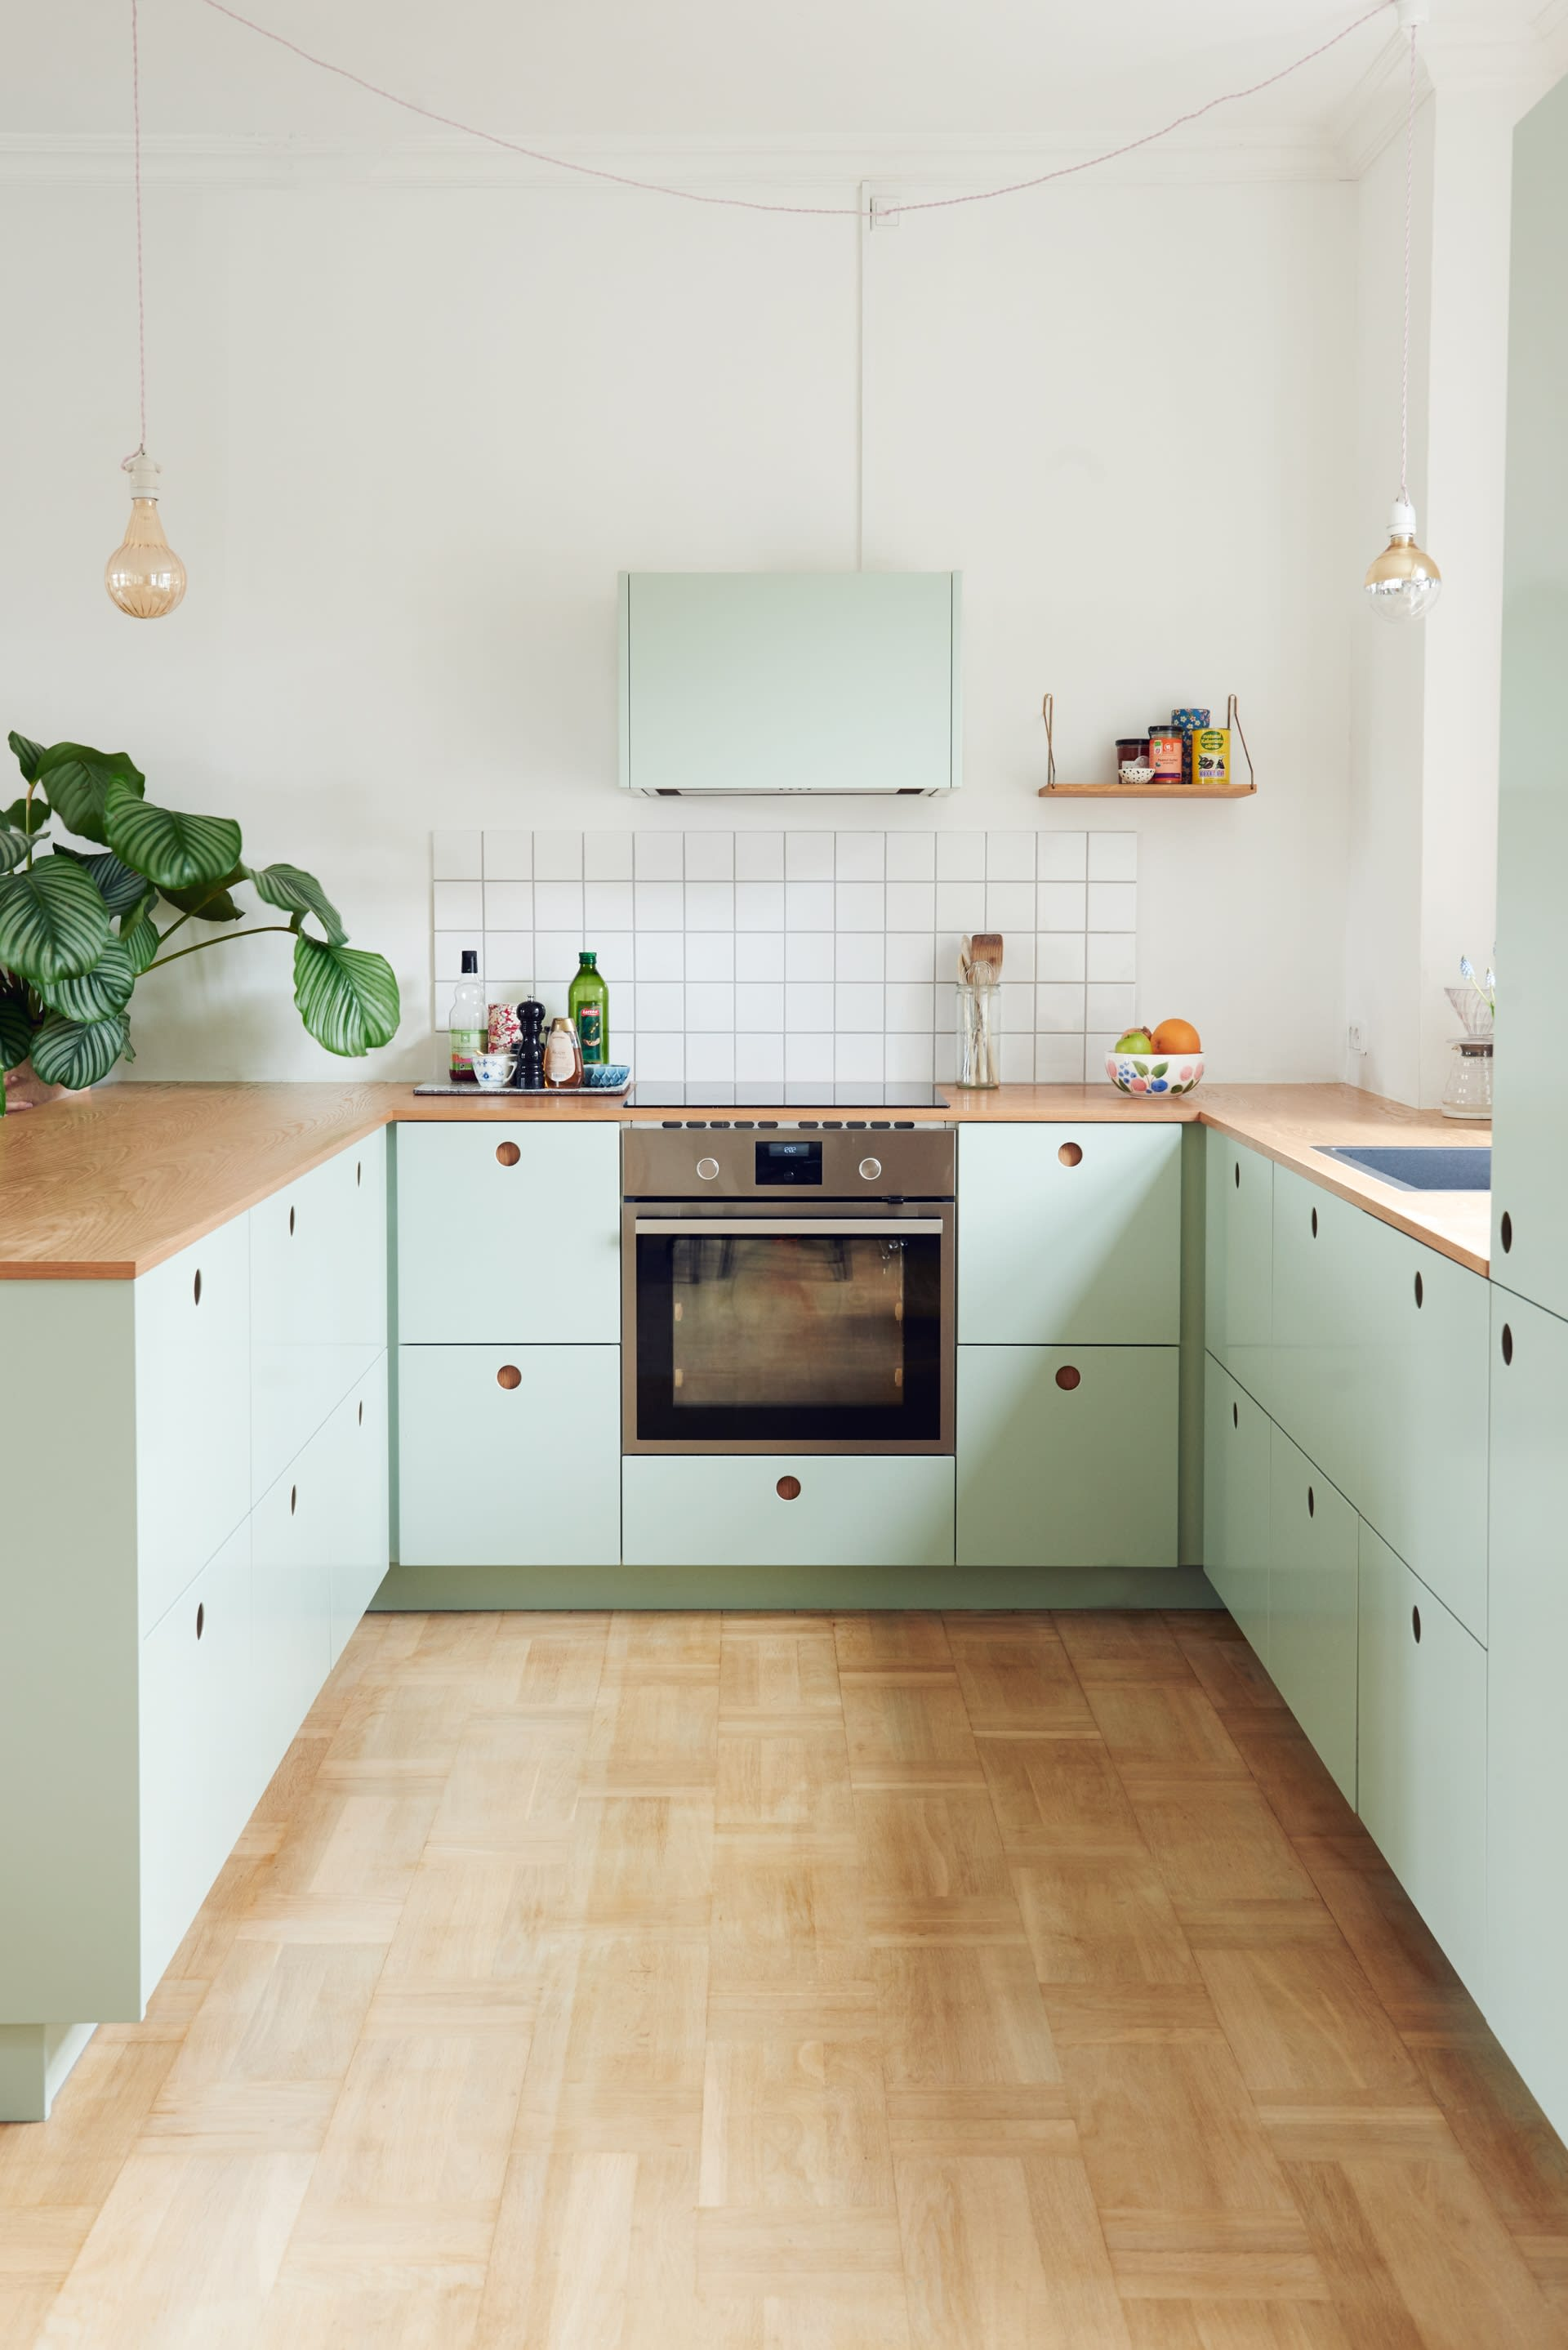 kitchens without upper cabinets should you go without apartment therapy. Black Bedroom Furniture Sets. Home Design Ideas